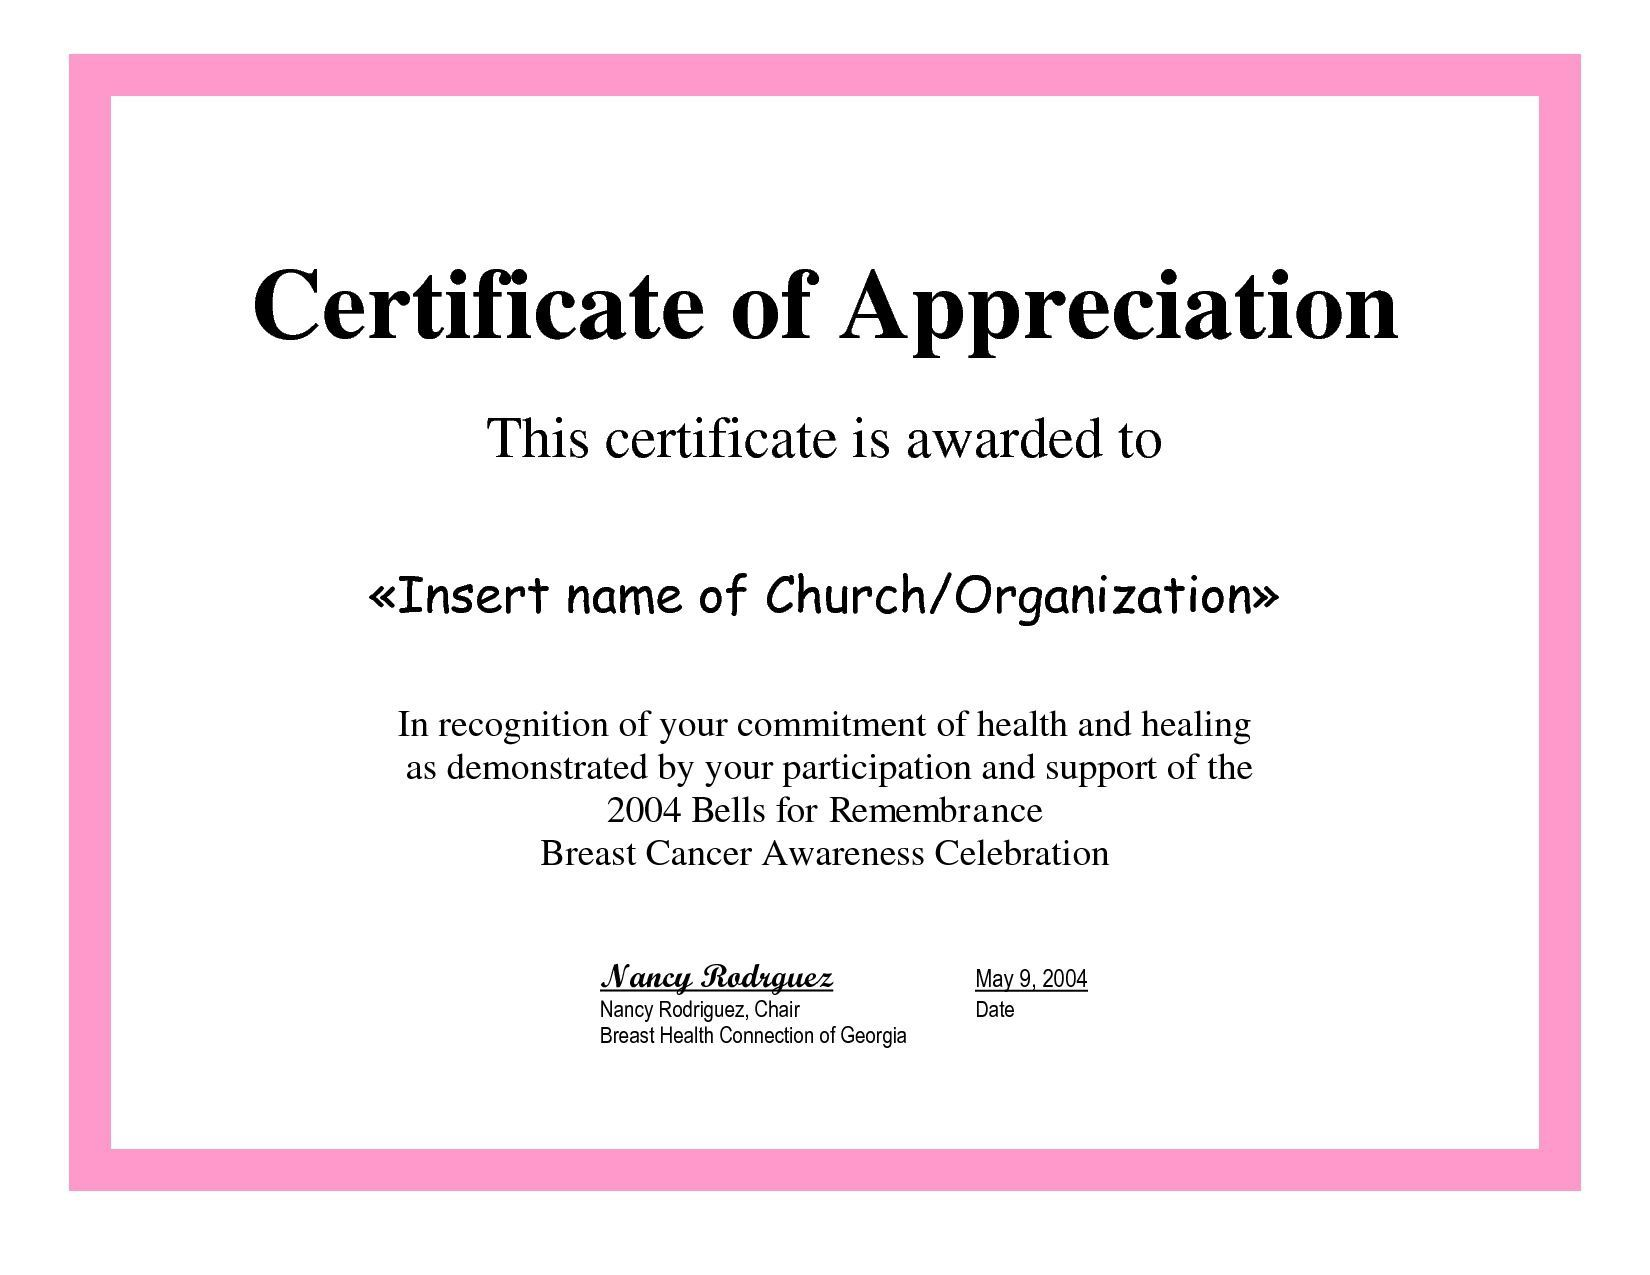 004 Beautiful Certificate Of Recognition Sample Wording Image  AwardFull